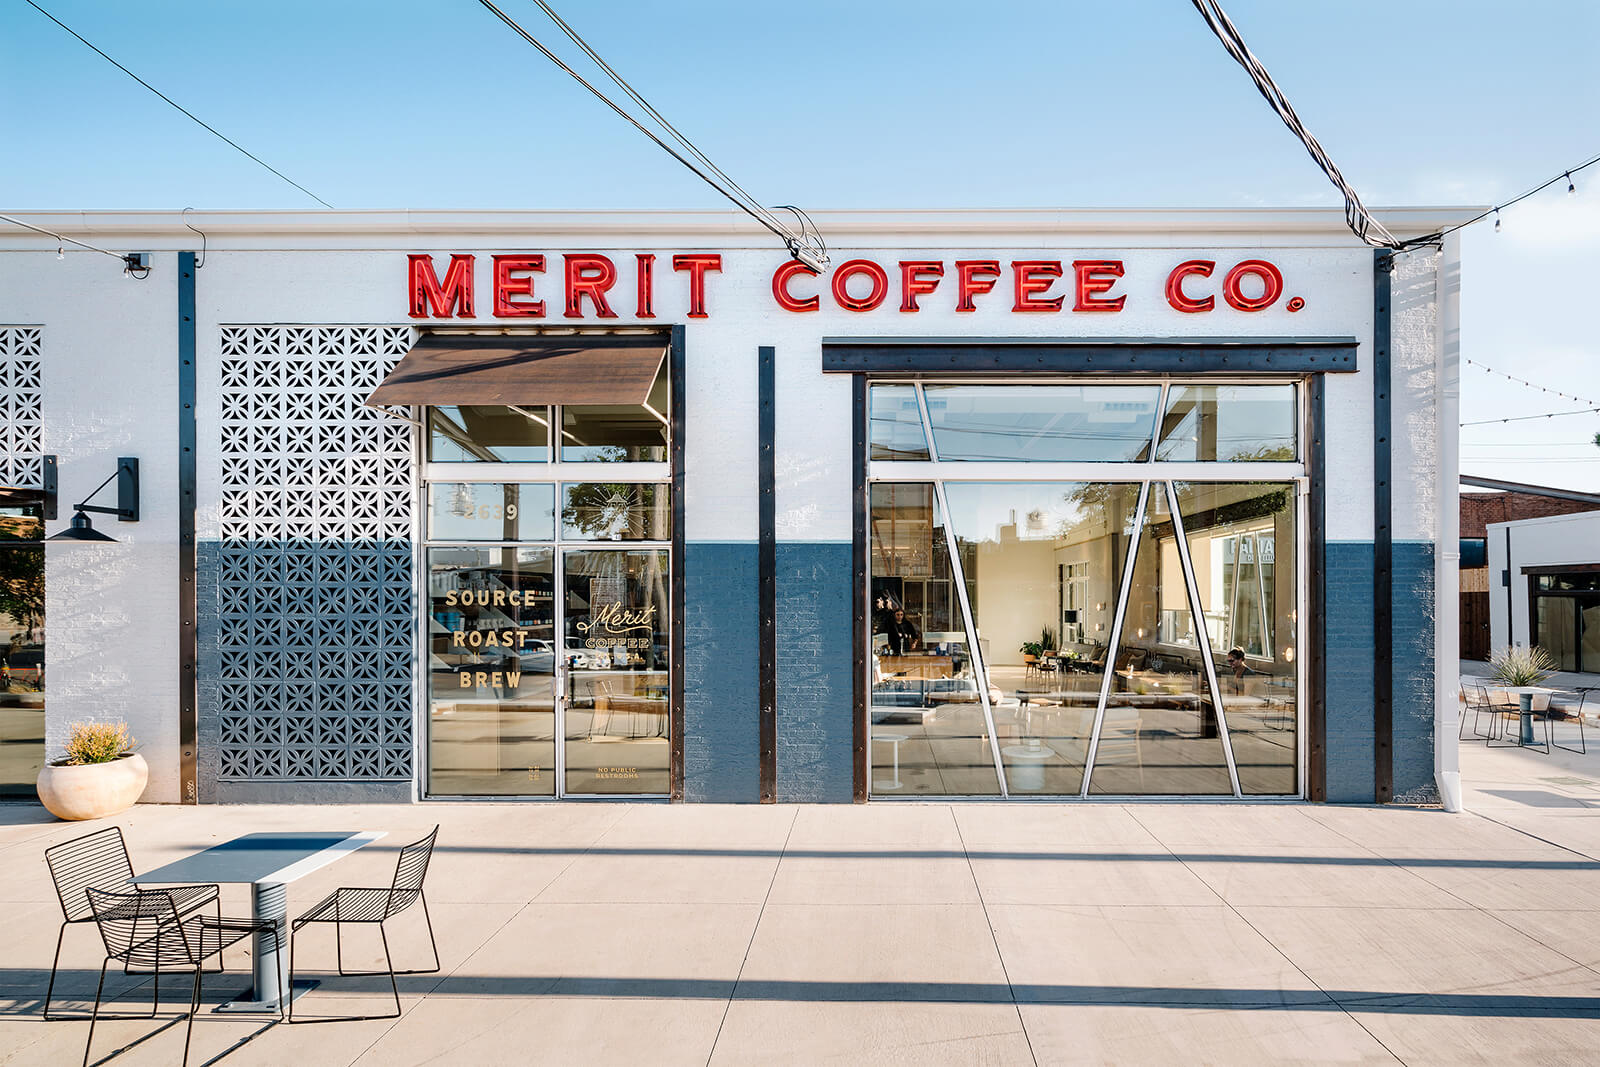 Merit Coffee